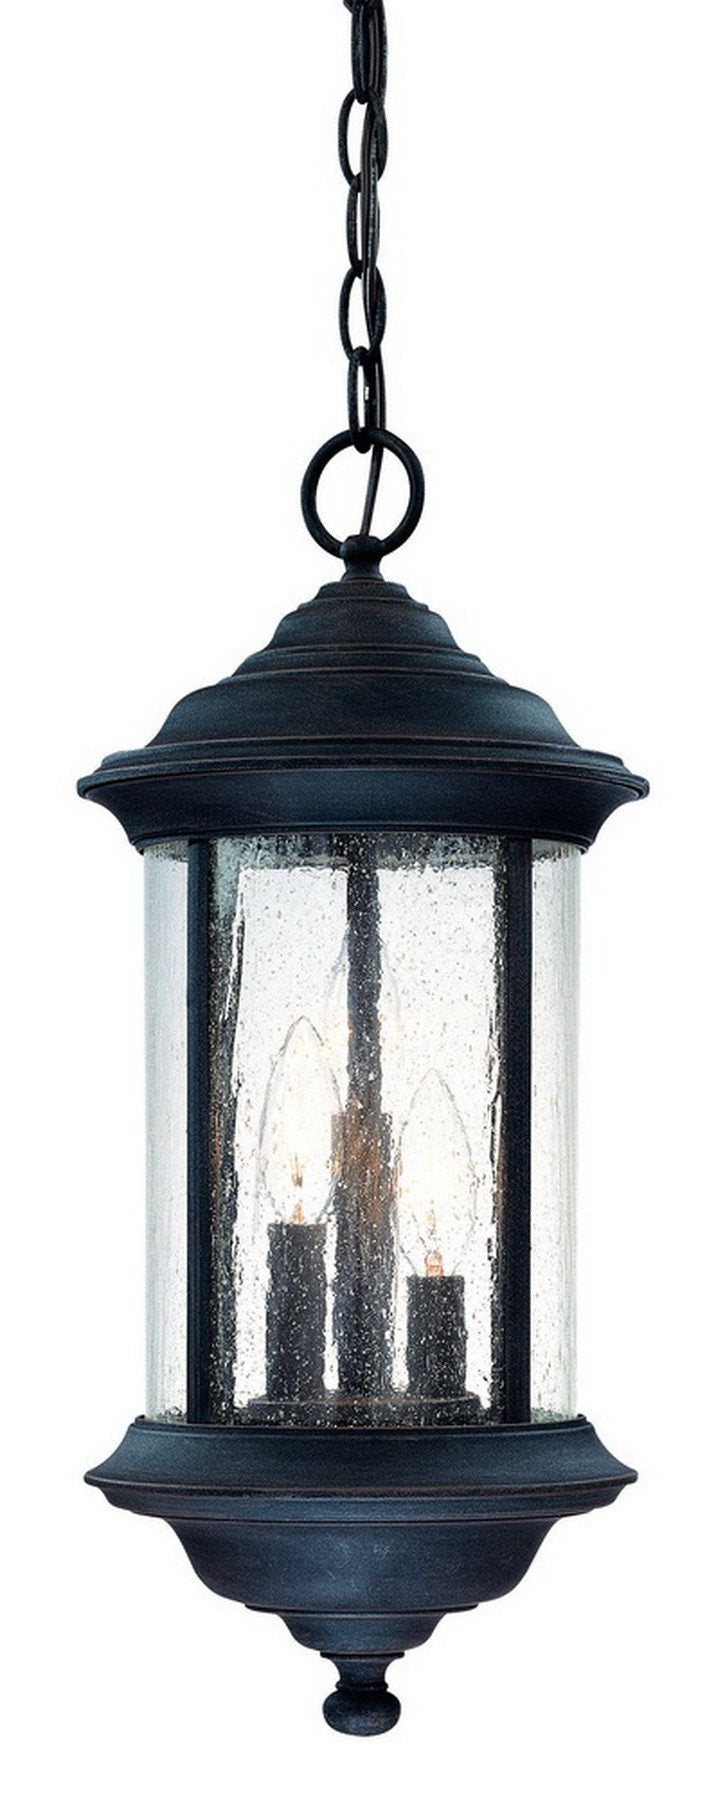 919-53 Dolan Designs Walnut Grove 3 Light Hanging Rustique